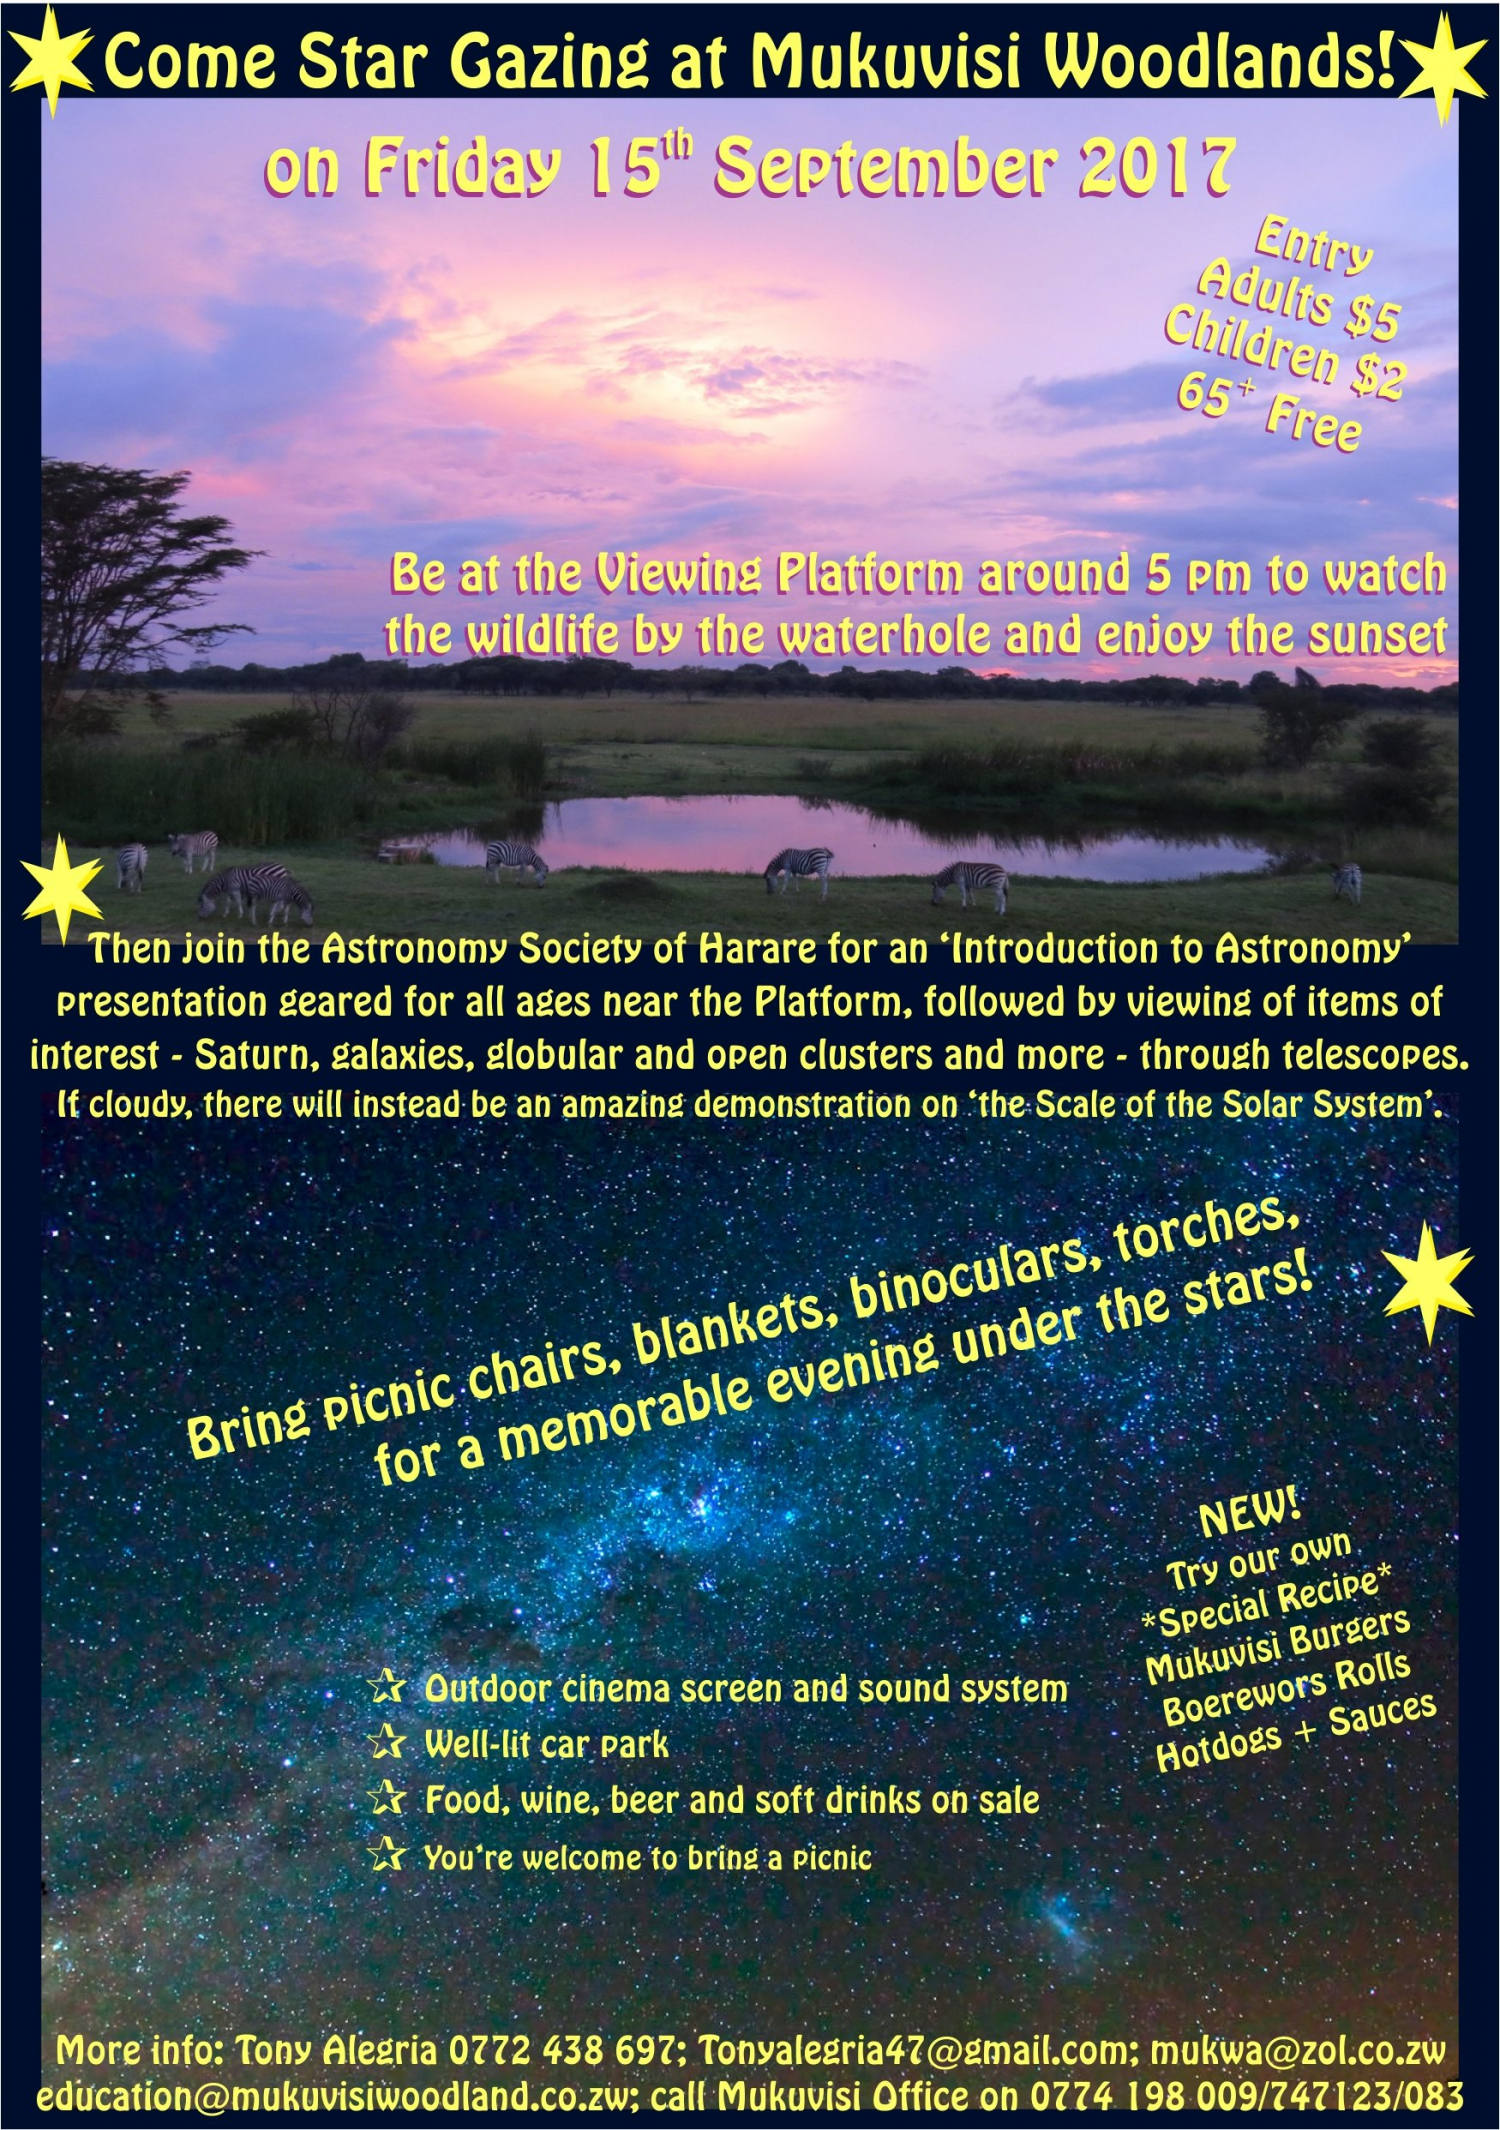 Come Star Gazing at Mukuvisi Fri 15 Sept 2017